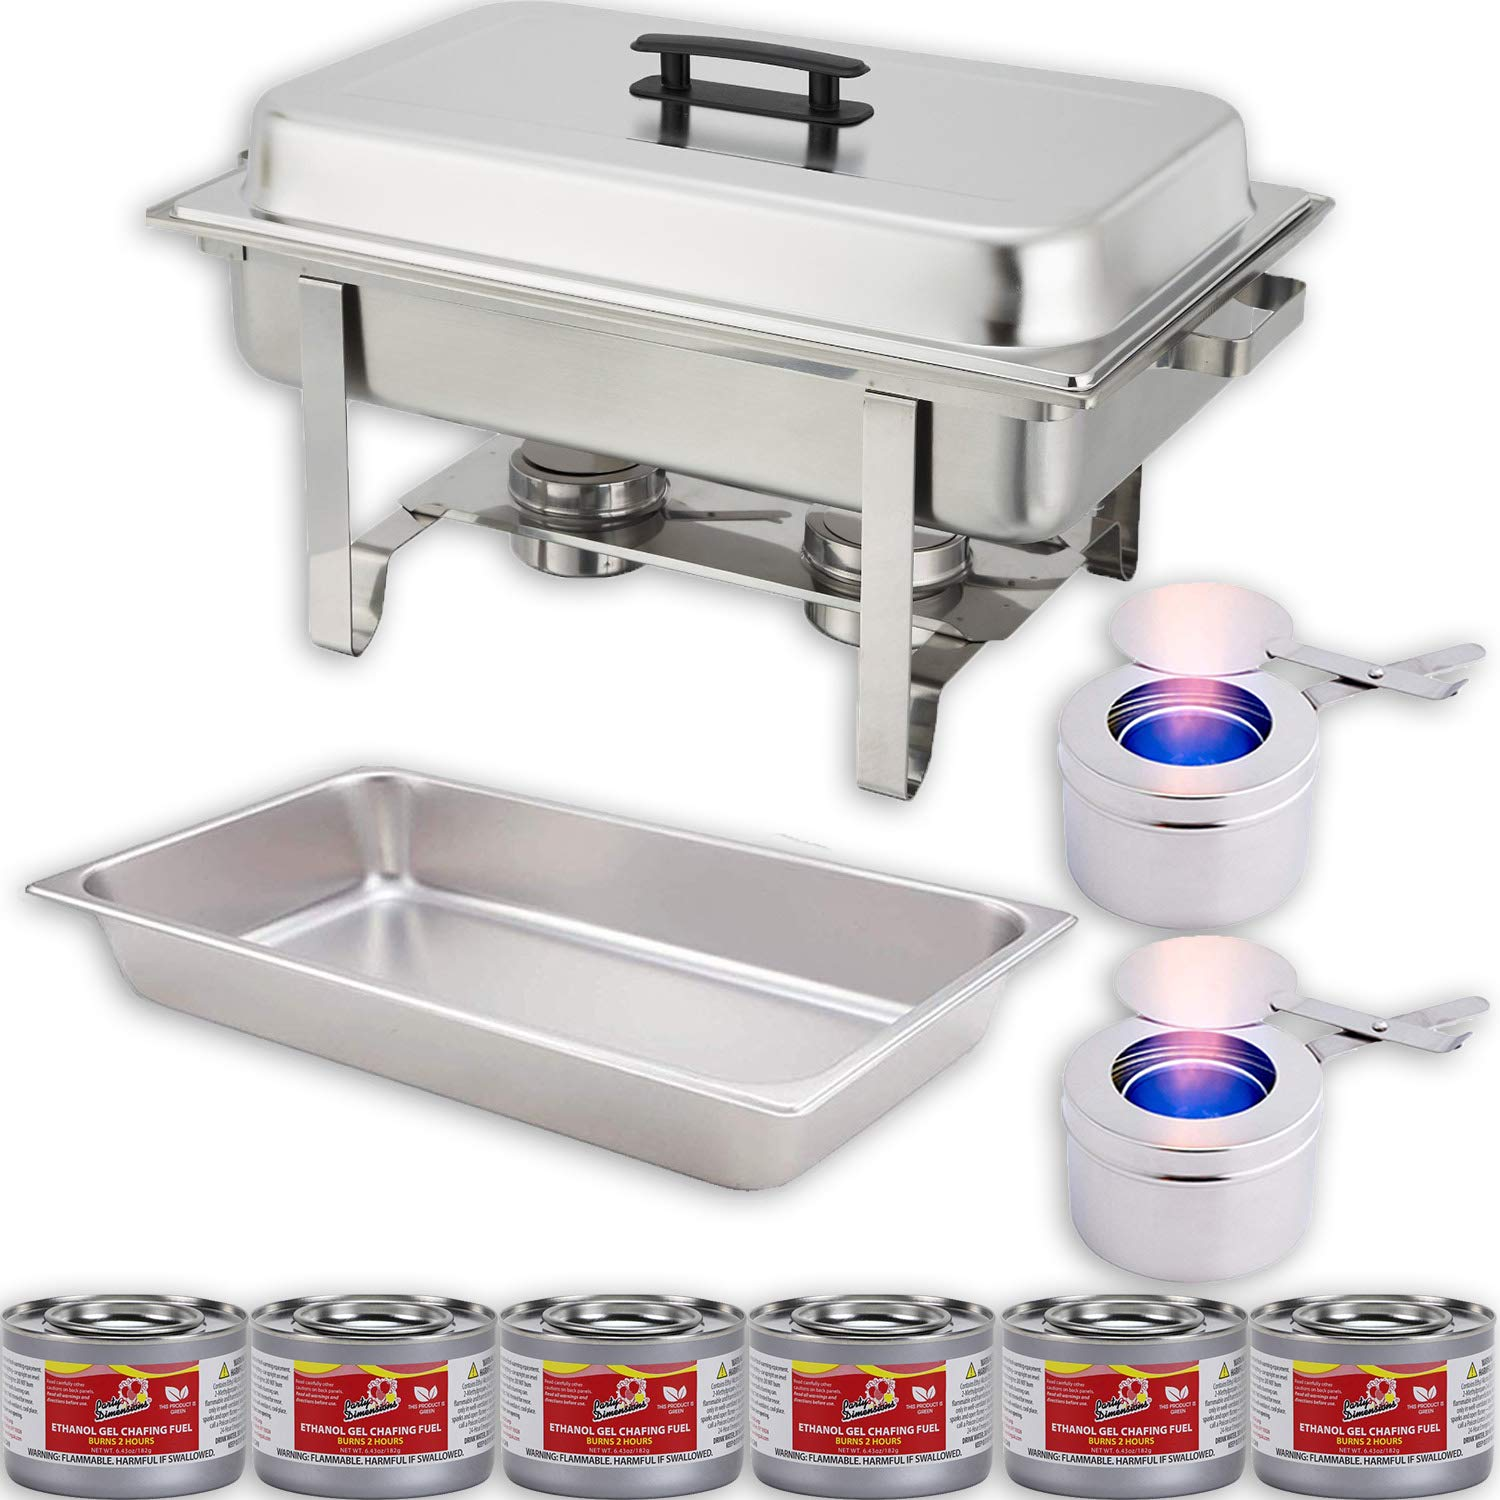 Chafing Dish Buffet Set w/Fuel - Water Pan + Food Pan (8 qt) + Frame + 2 Fuel Holders + 6 Fuel Cans - Warmer Kit